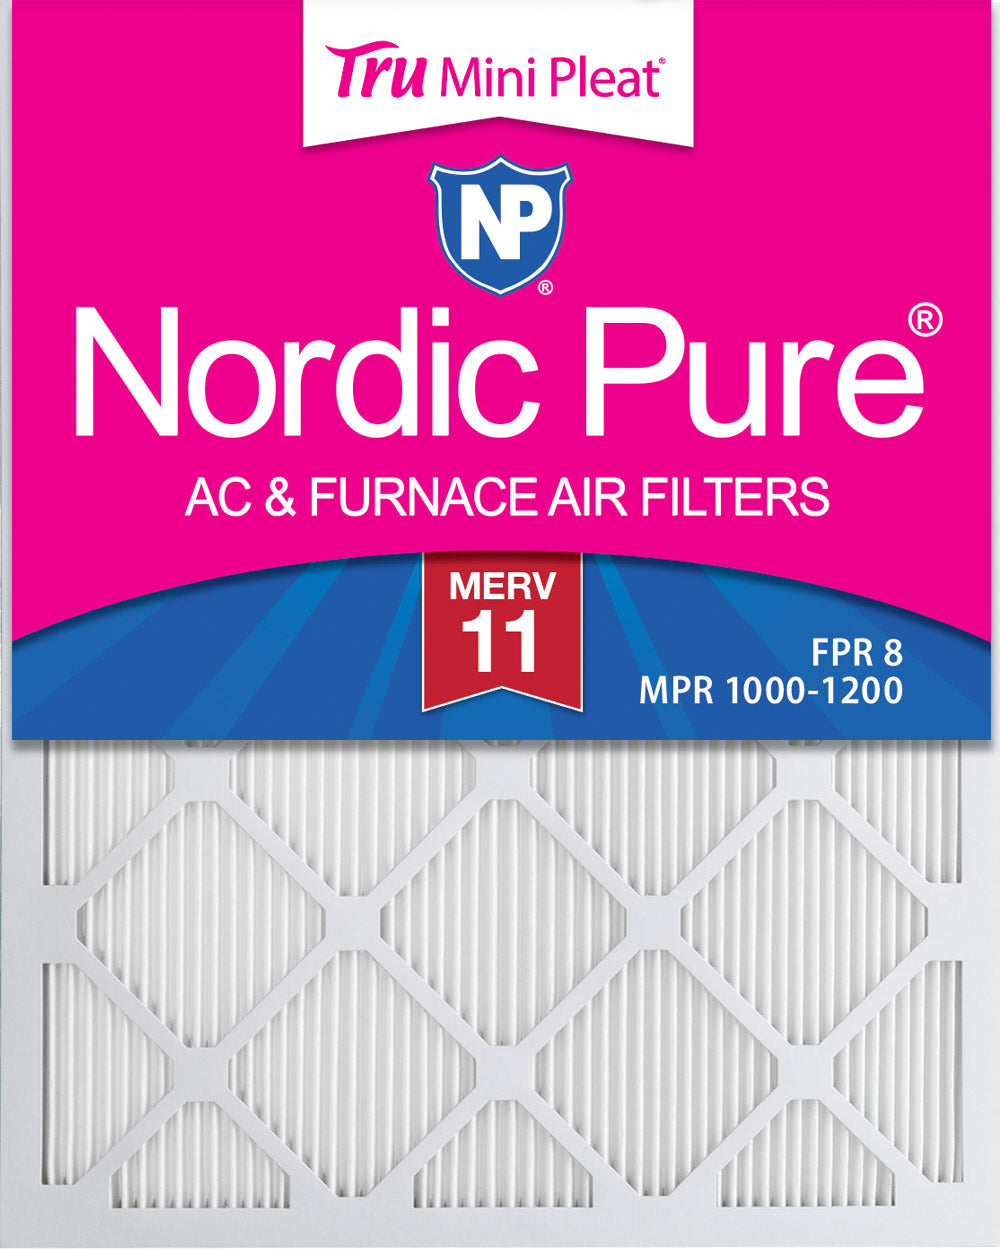 12x24x1 Tru Mini Pleat MERV 11 AC Furnace Air Filters 3 Pack